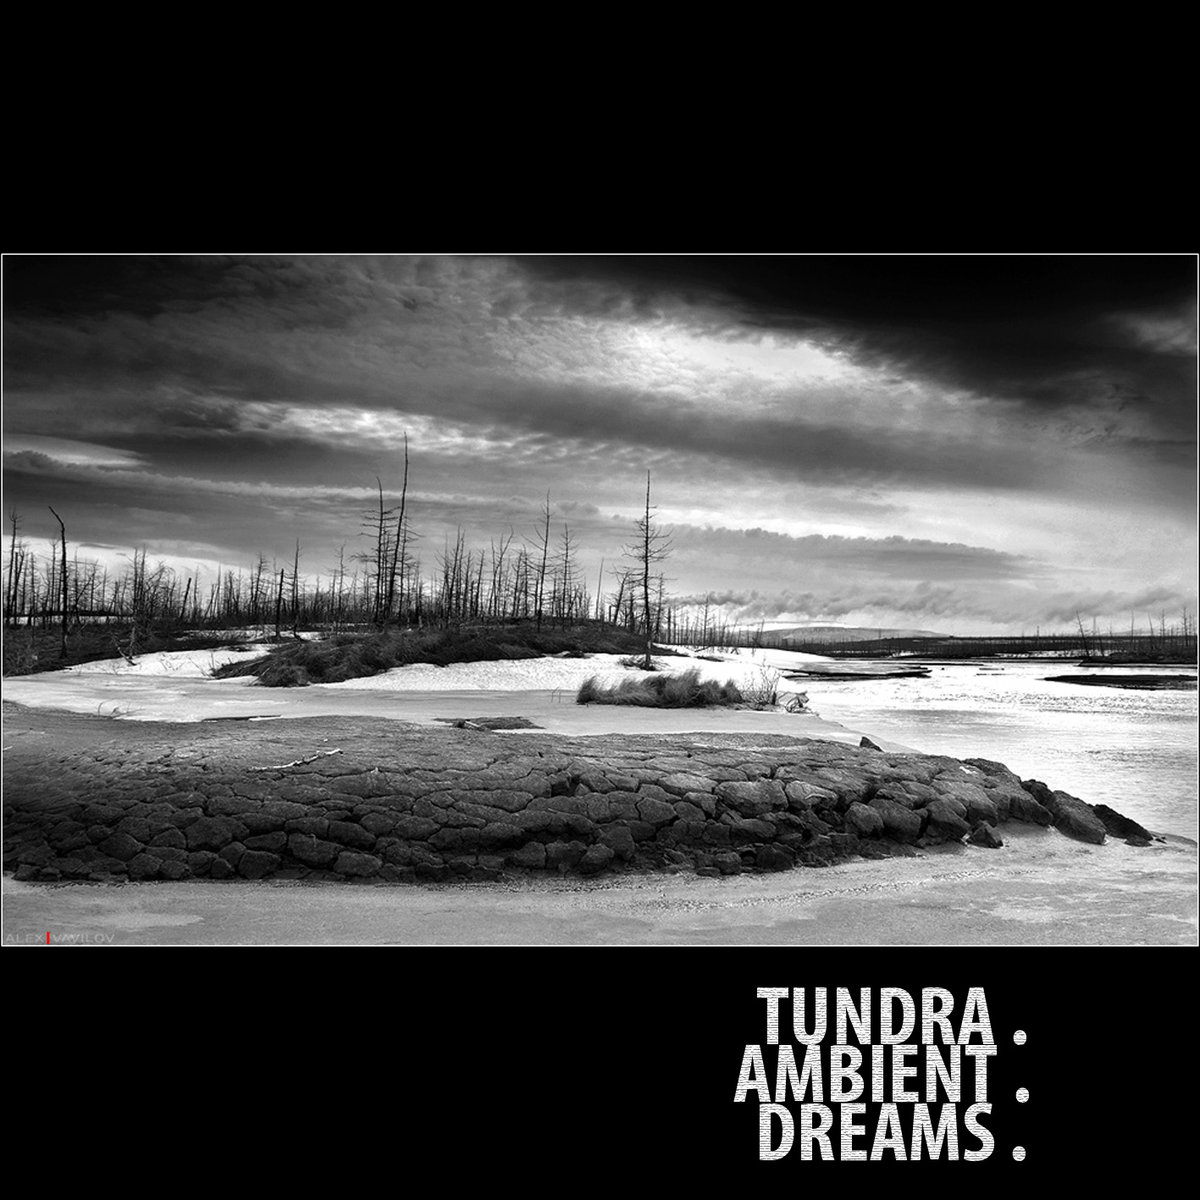 Ellipsis - Tundra.Ambient.Dreams. (artwork)